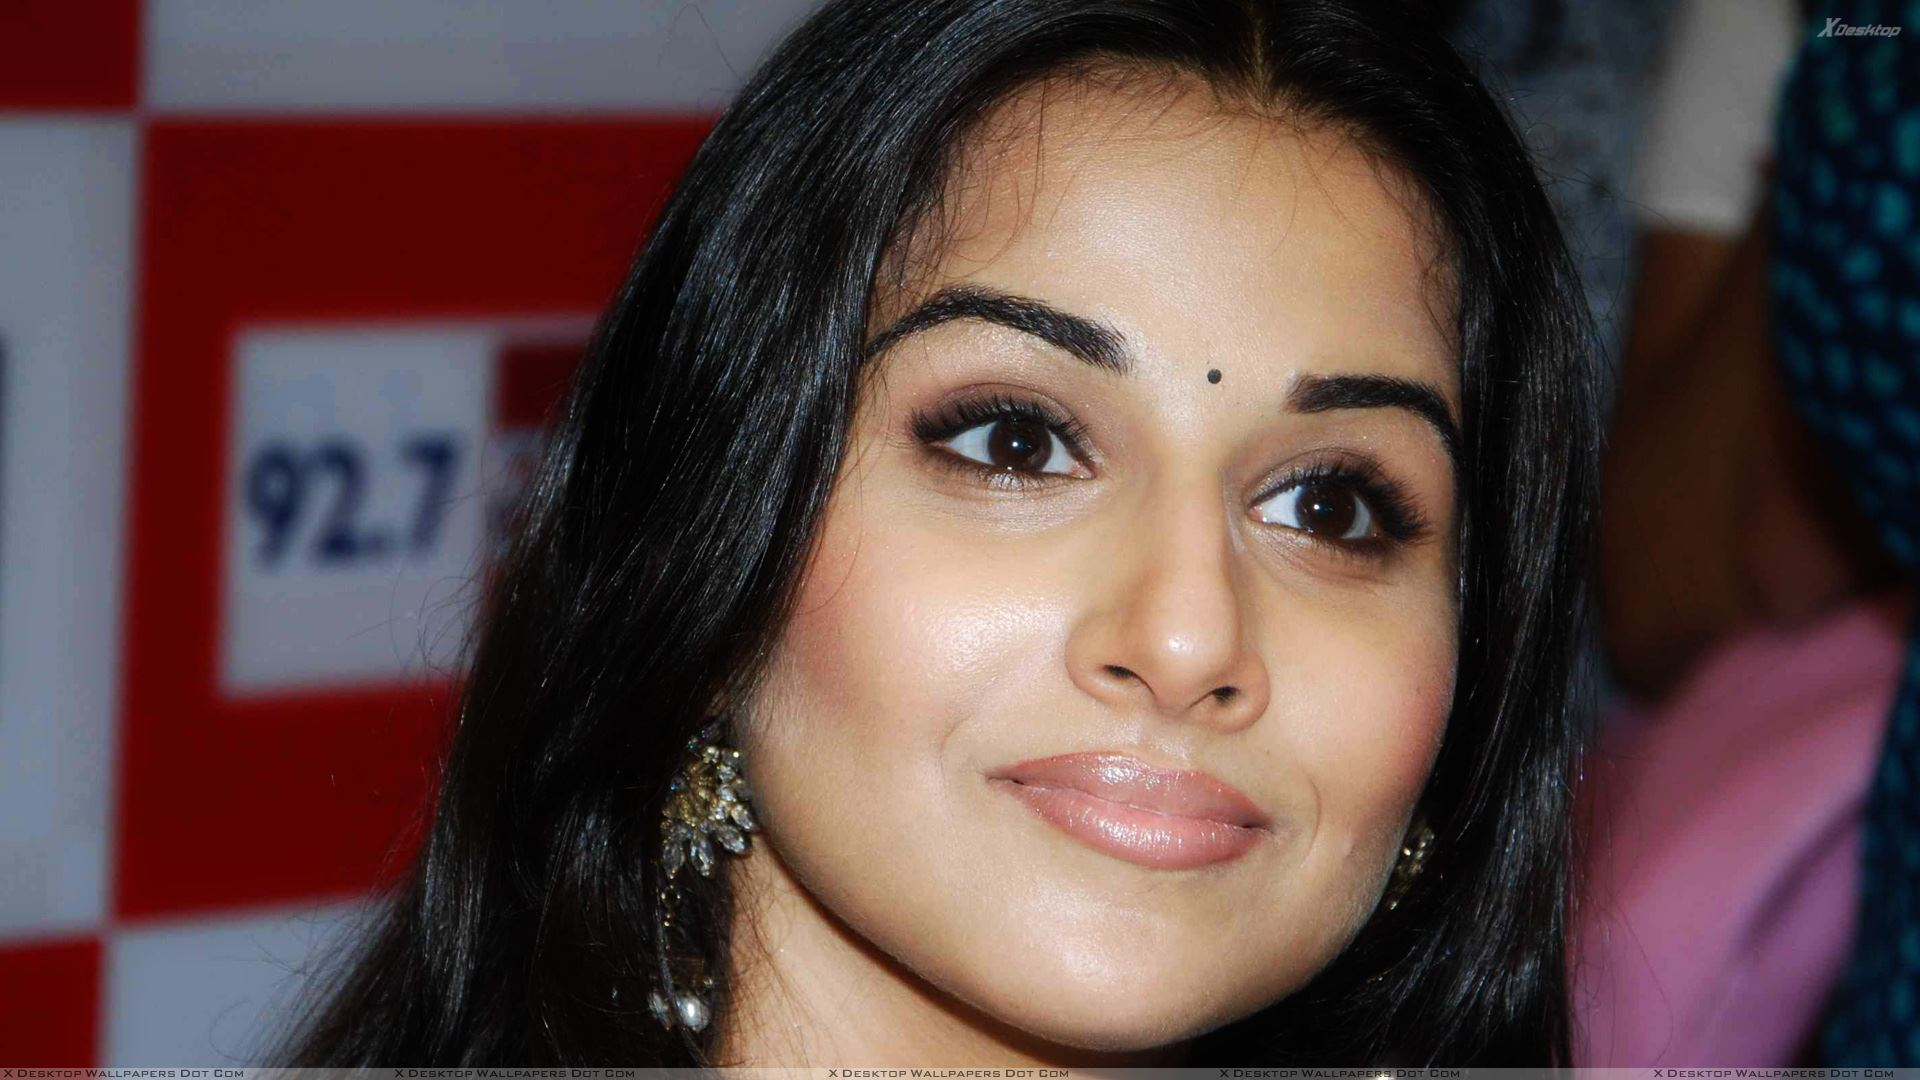 vidya balan ultra face closeup at 92.7 big fm for new jingle launch